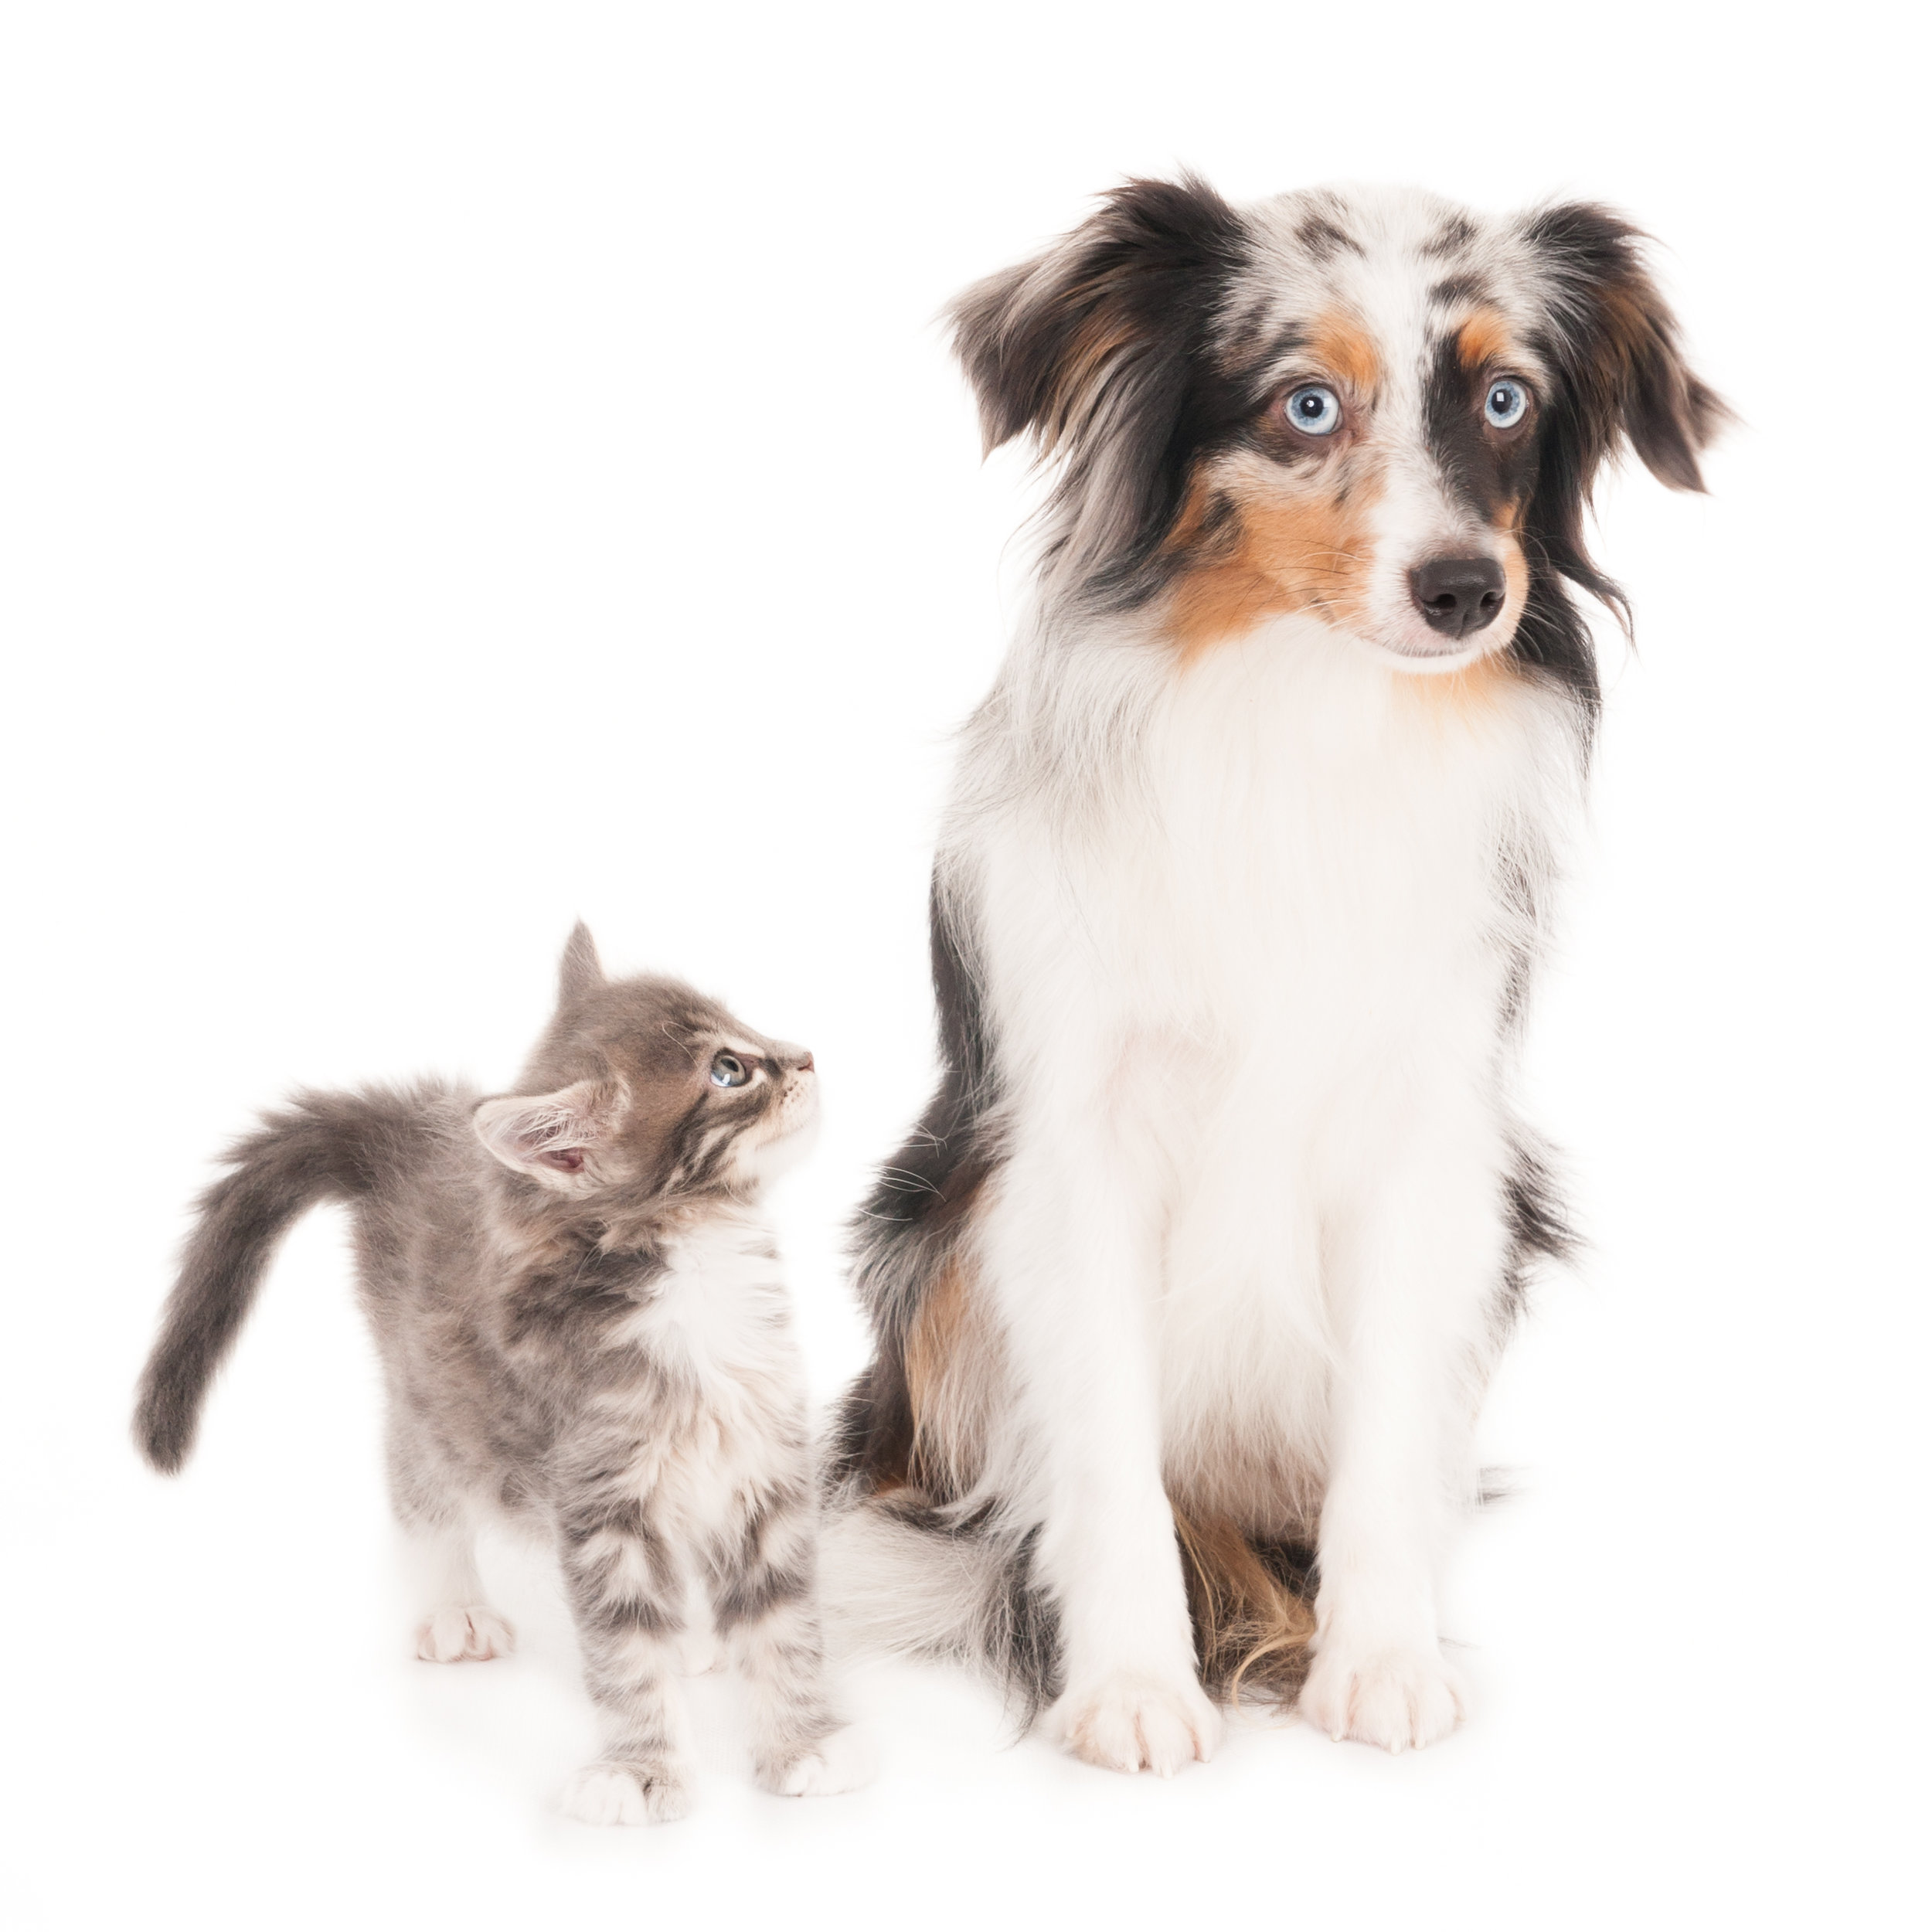 Kitten looking at a small Australian Shepherd Blue Merle dog. On white.jpg